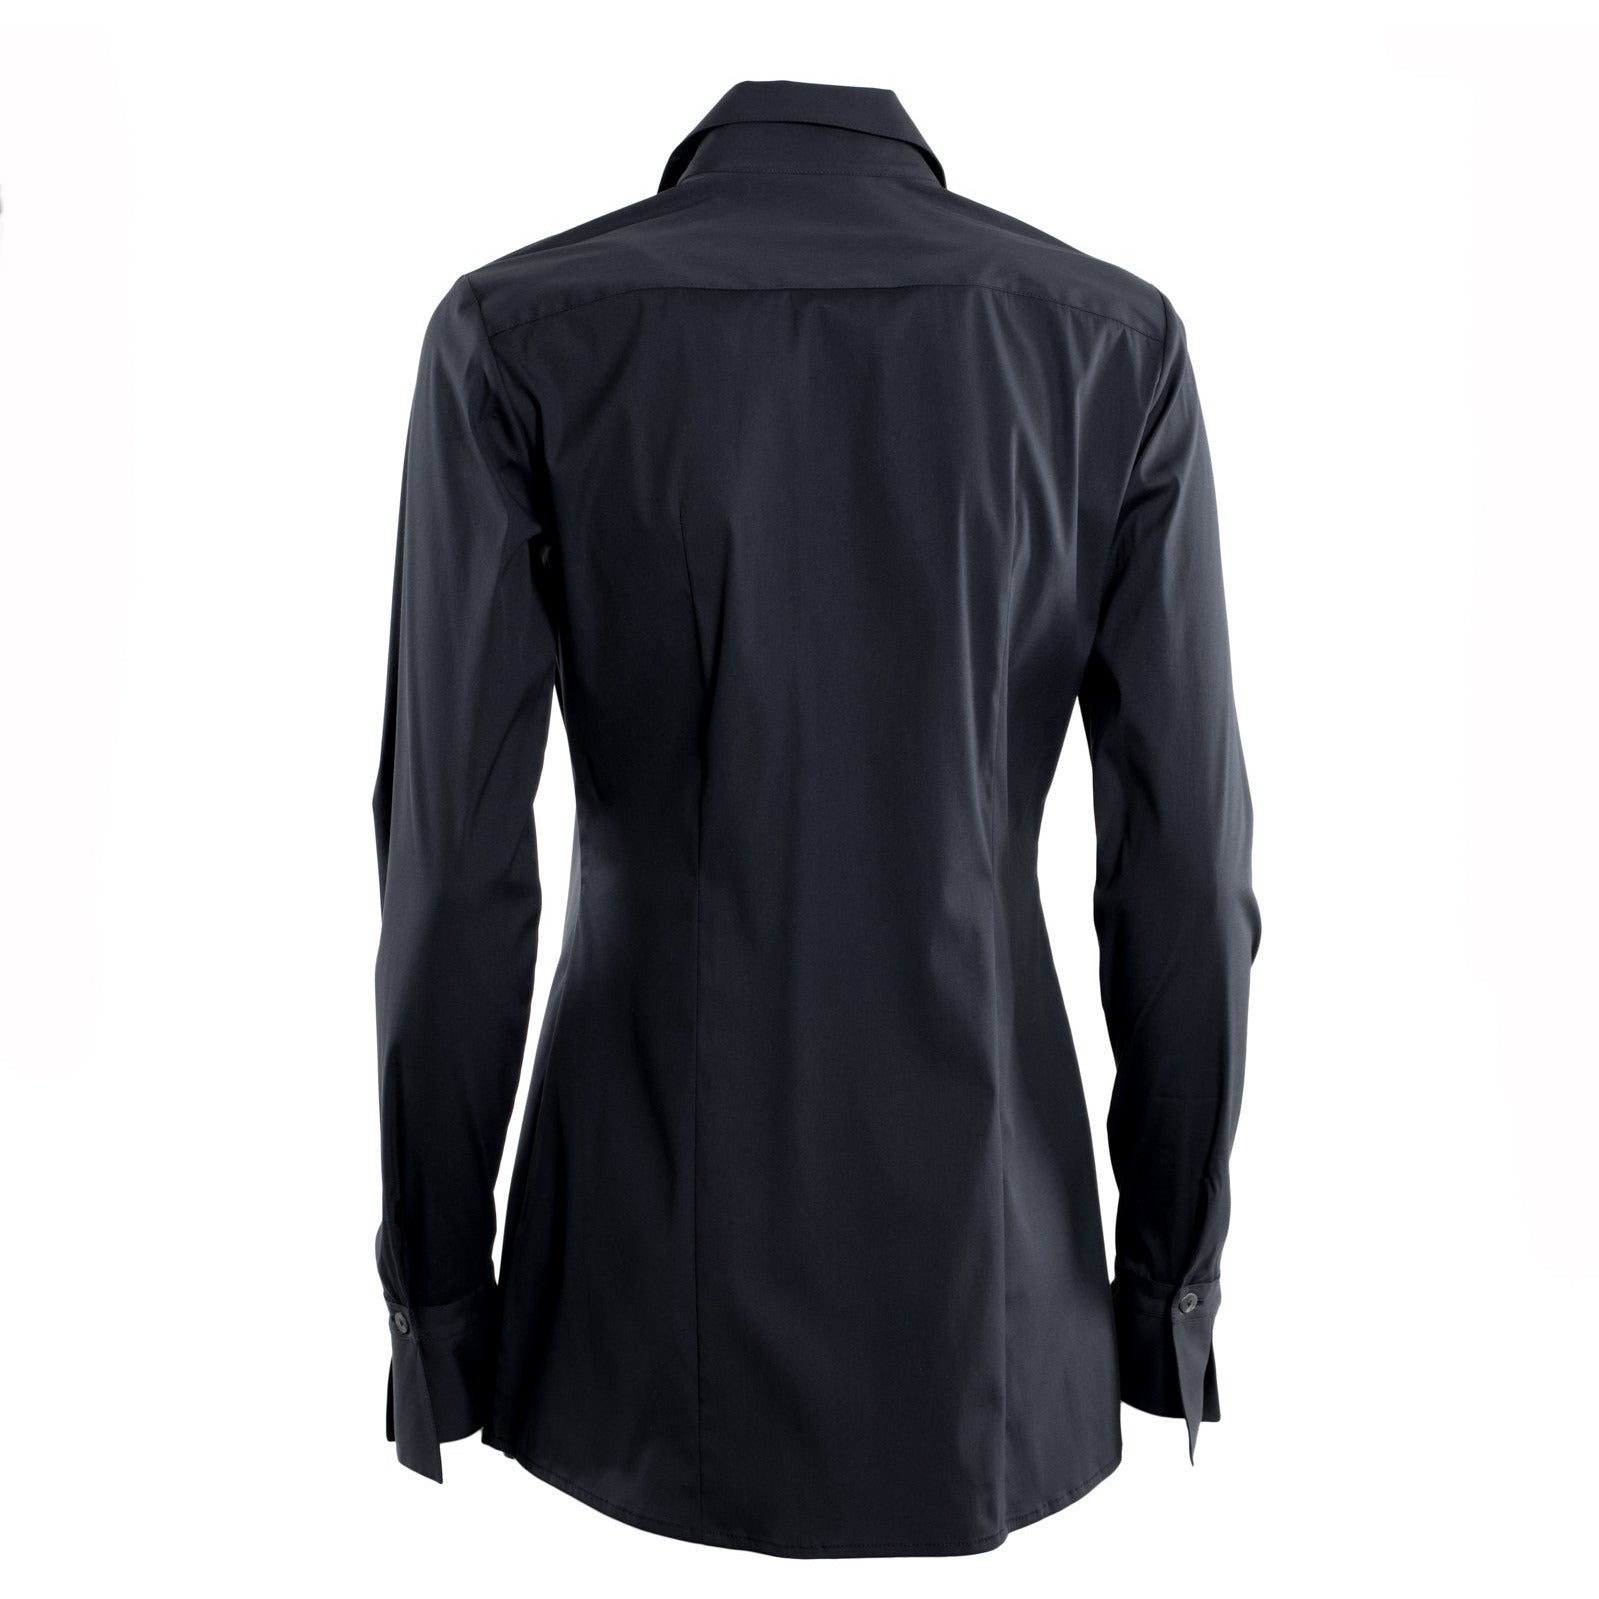 Jennifer Tattanelli crafted in Florence this timeless wardrobe essential, this classic black long-sleeved women shirt is crafted from high quality cotton